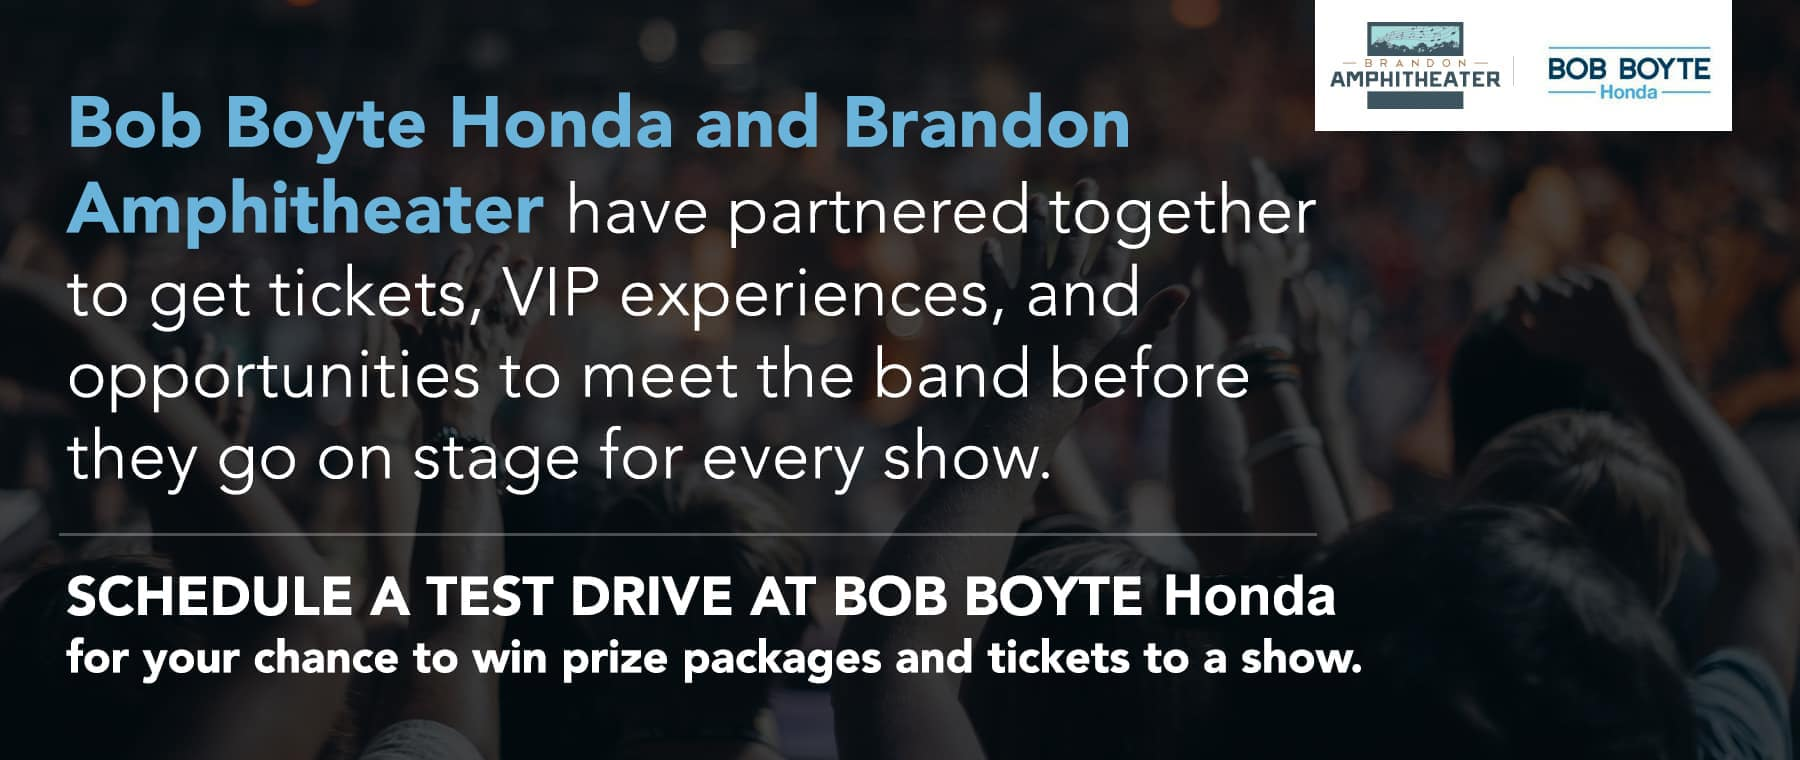 Brandon Amphitheater And Bob Boyte Honda Send You To The Show